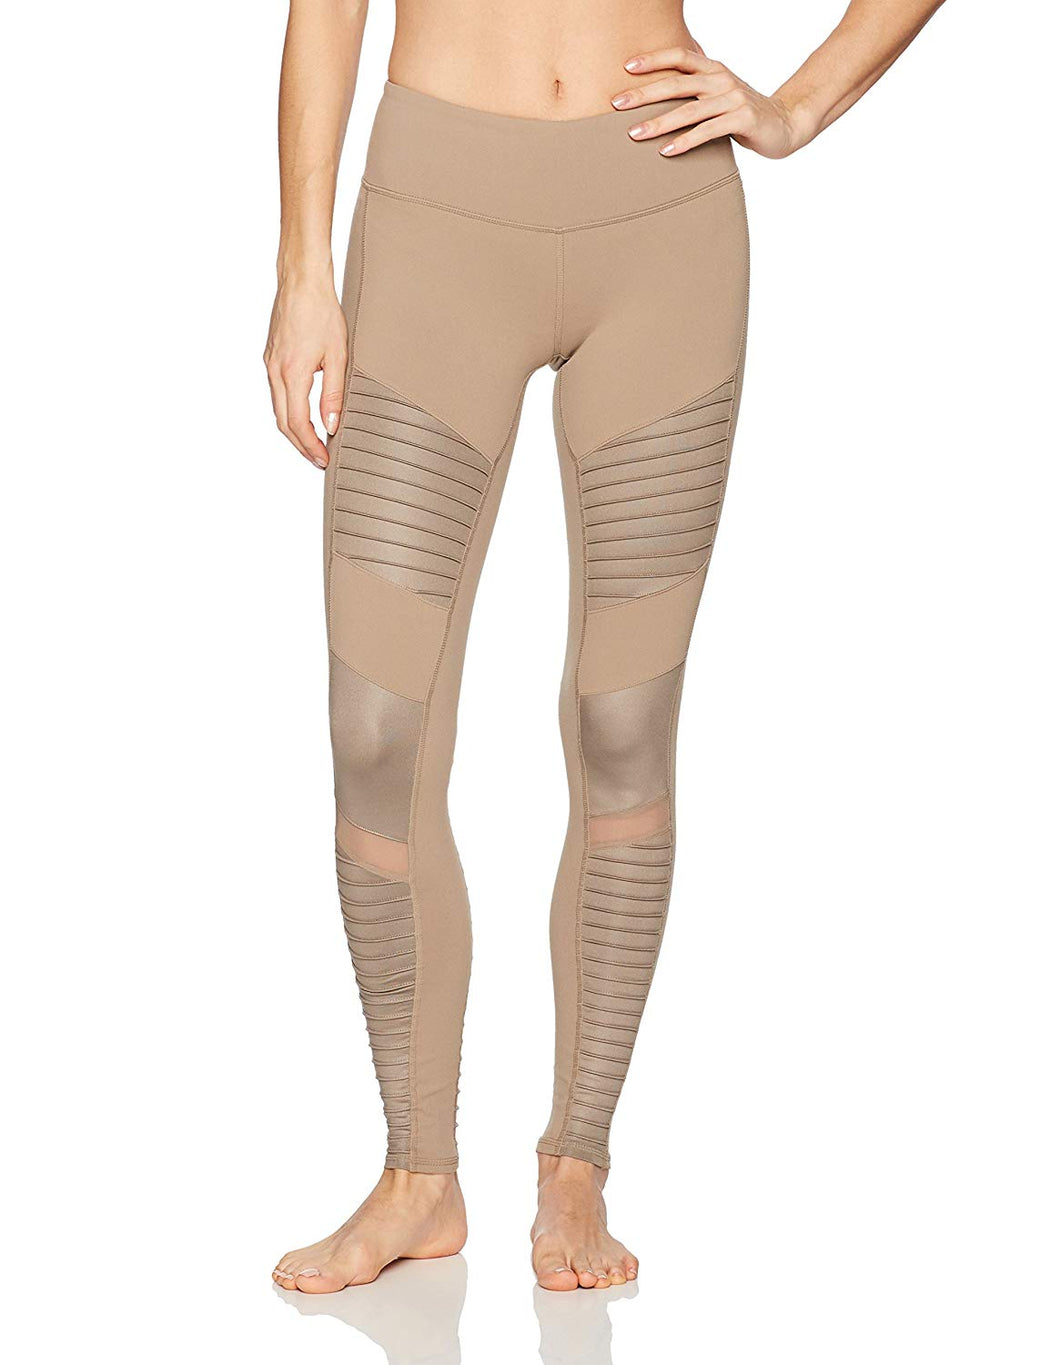 Alo Yoga Women's Moto Legging